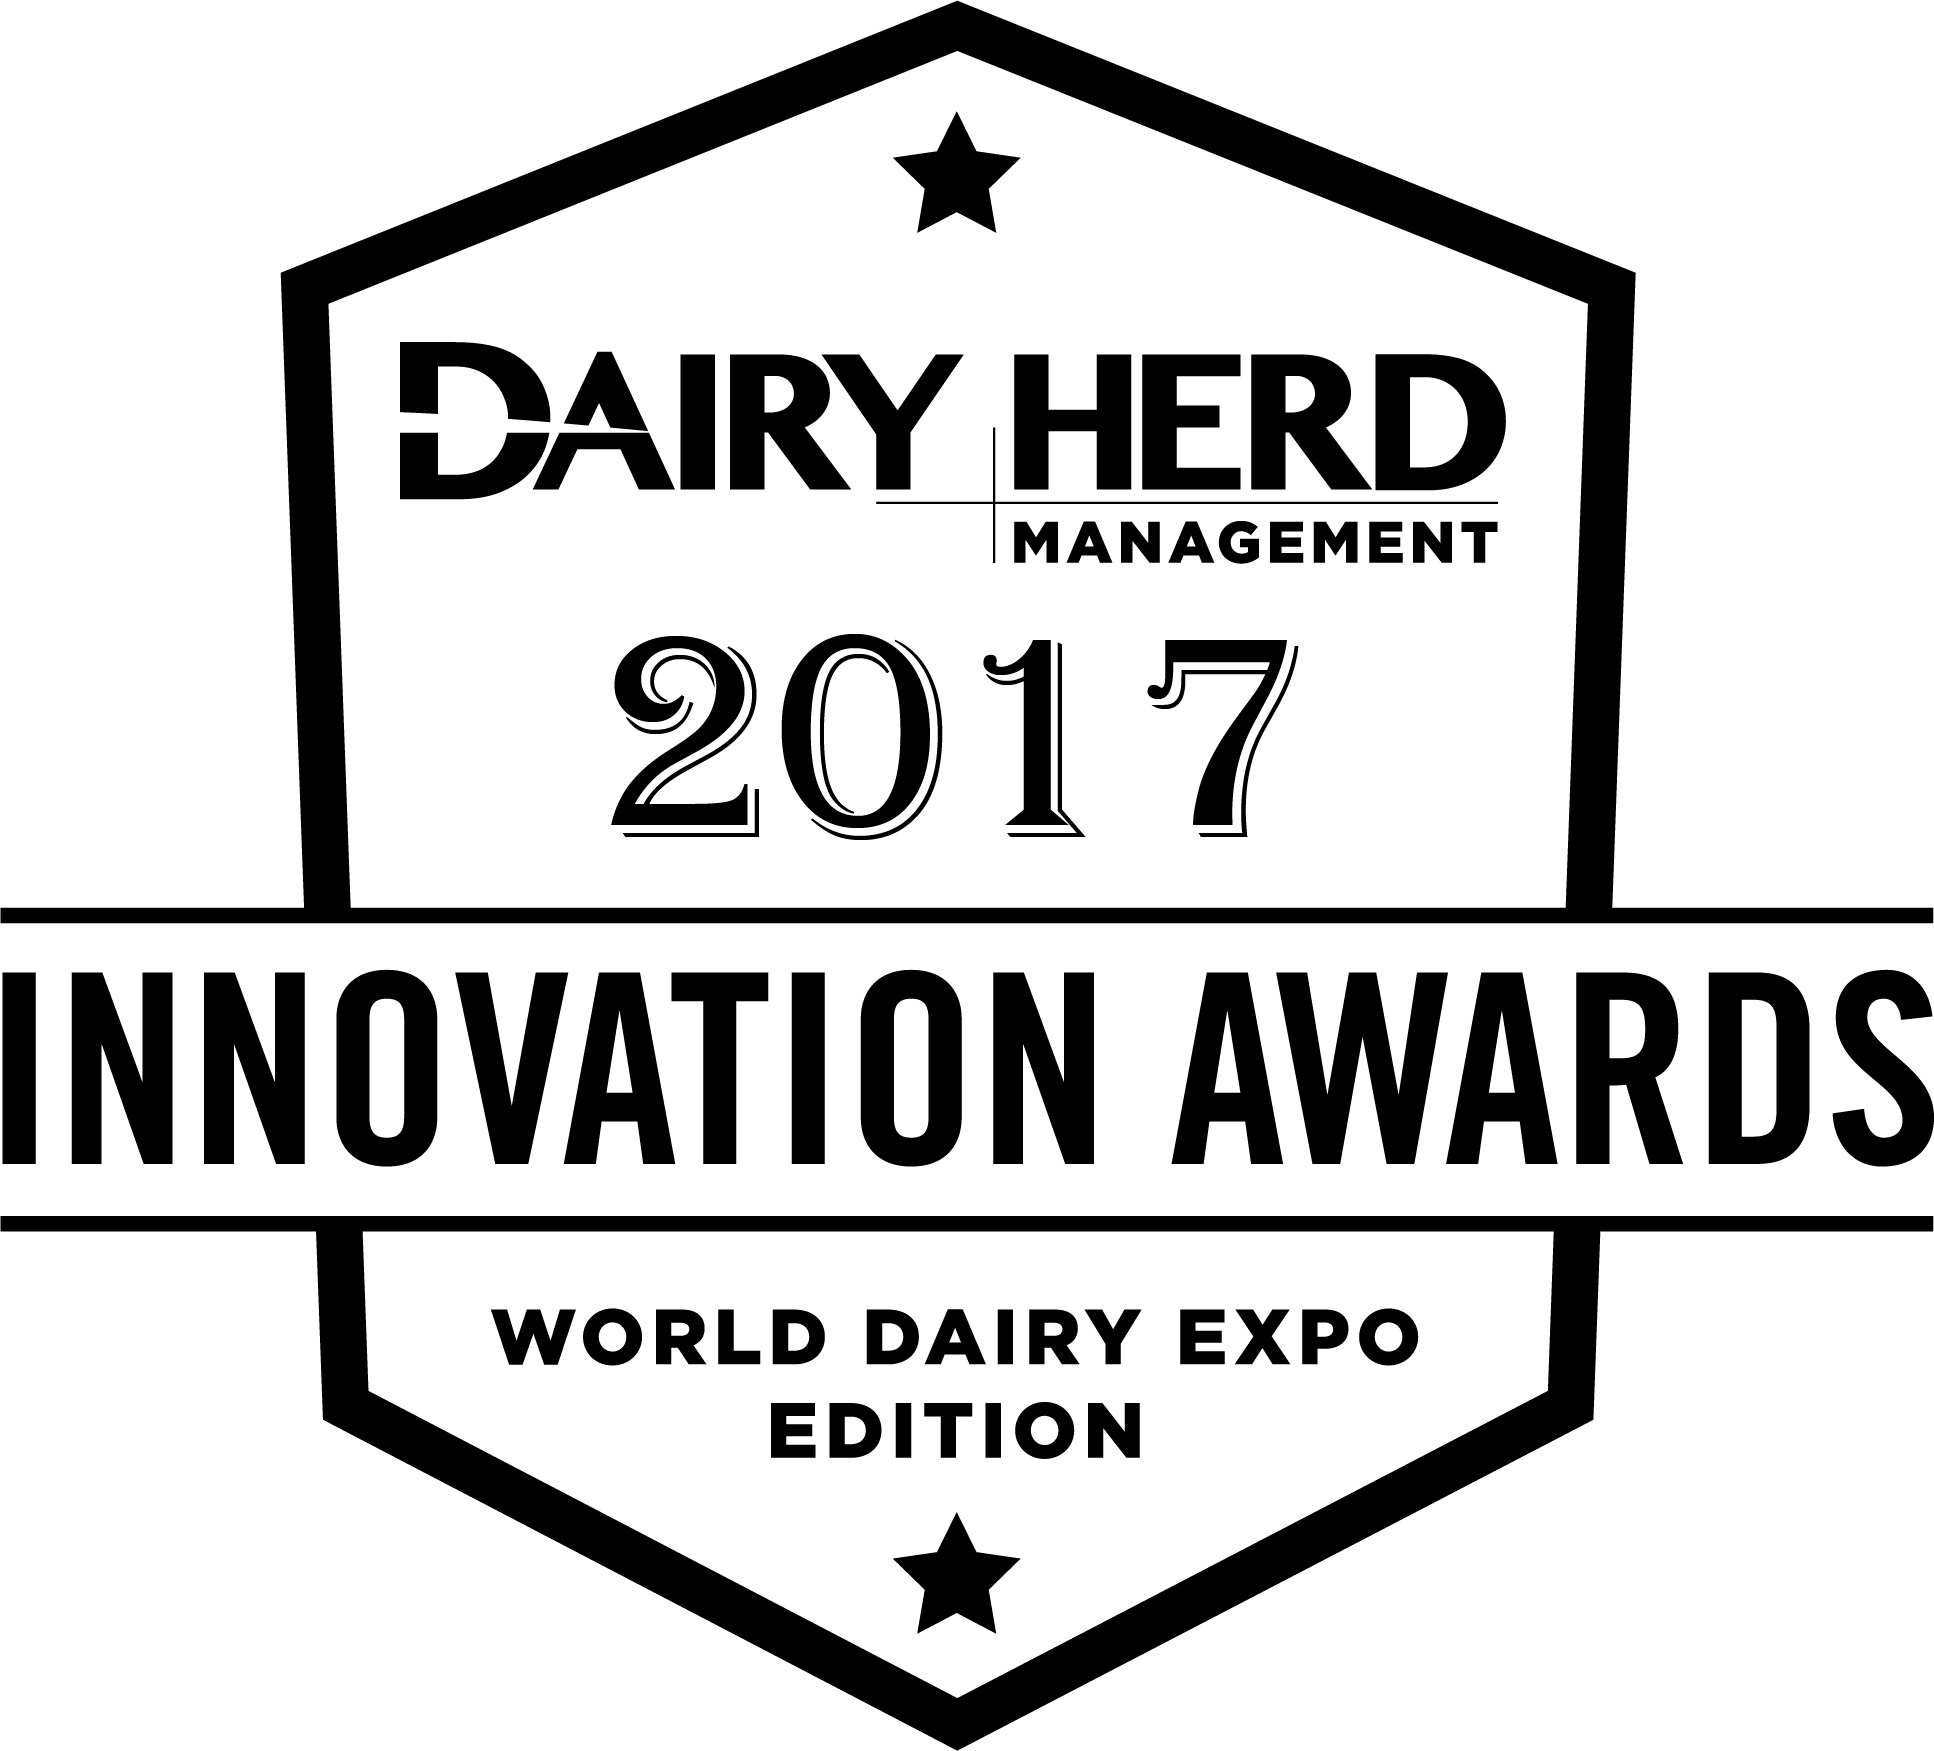 FIRST WAVE SYSTEM NAMED TOP 10 INNOVATION AT WORLD DAIRY EXPO